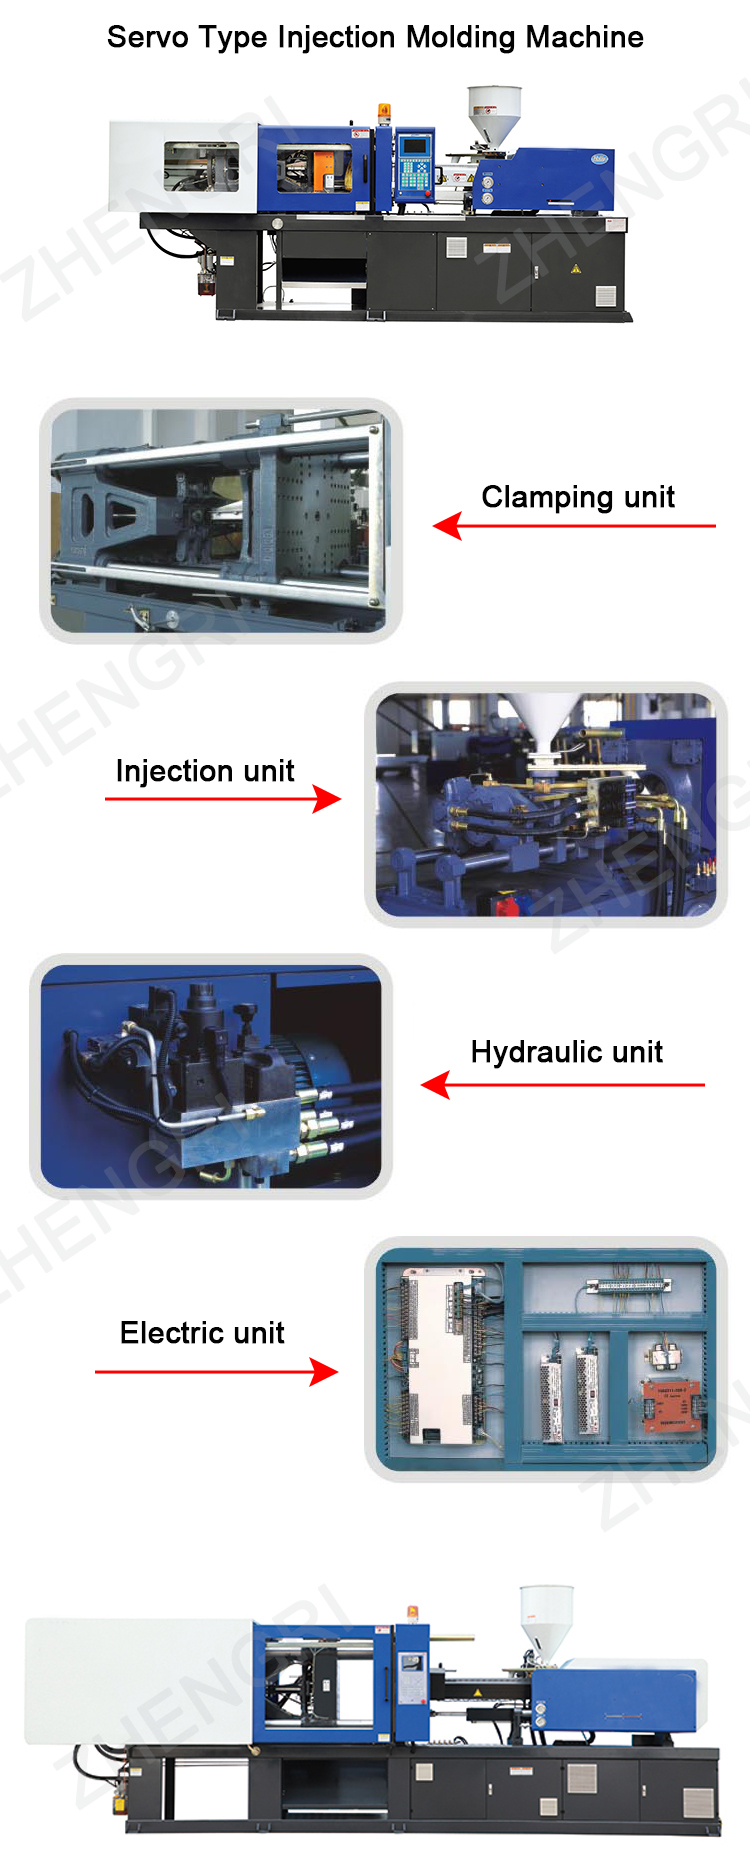 Servo Syringe Injection Molding Machine